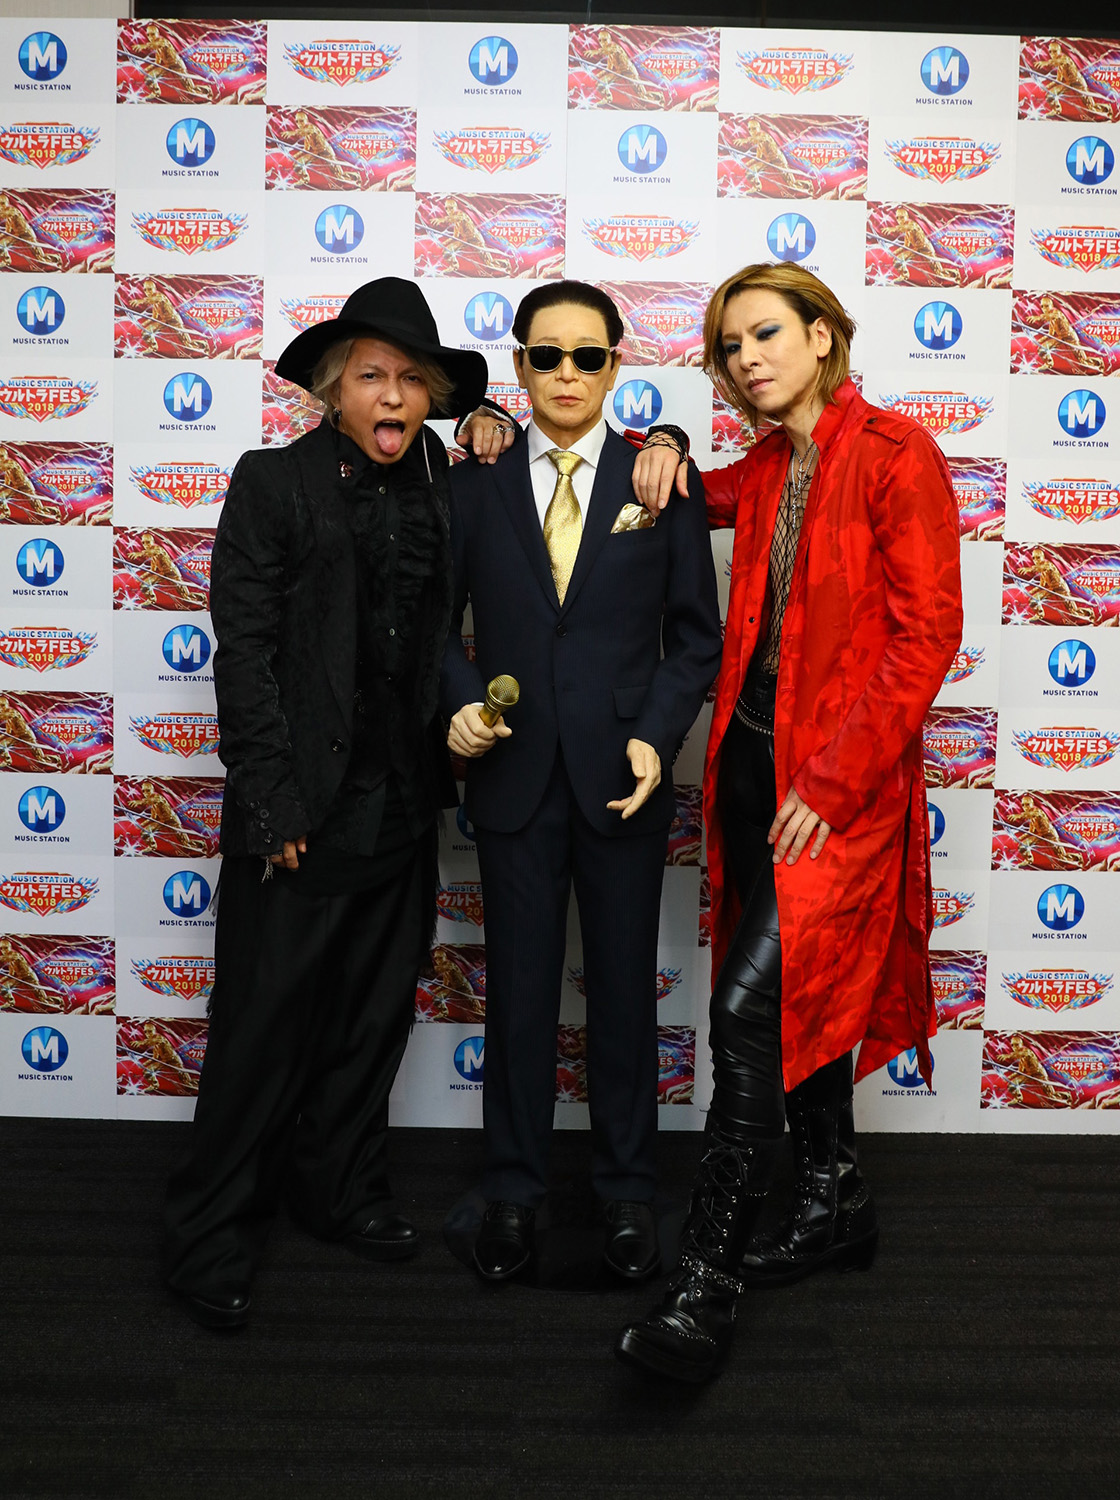 JRock247-Yoshiki-Hyde-Red-Swan-Music-Station-20180917-L5398